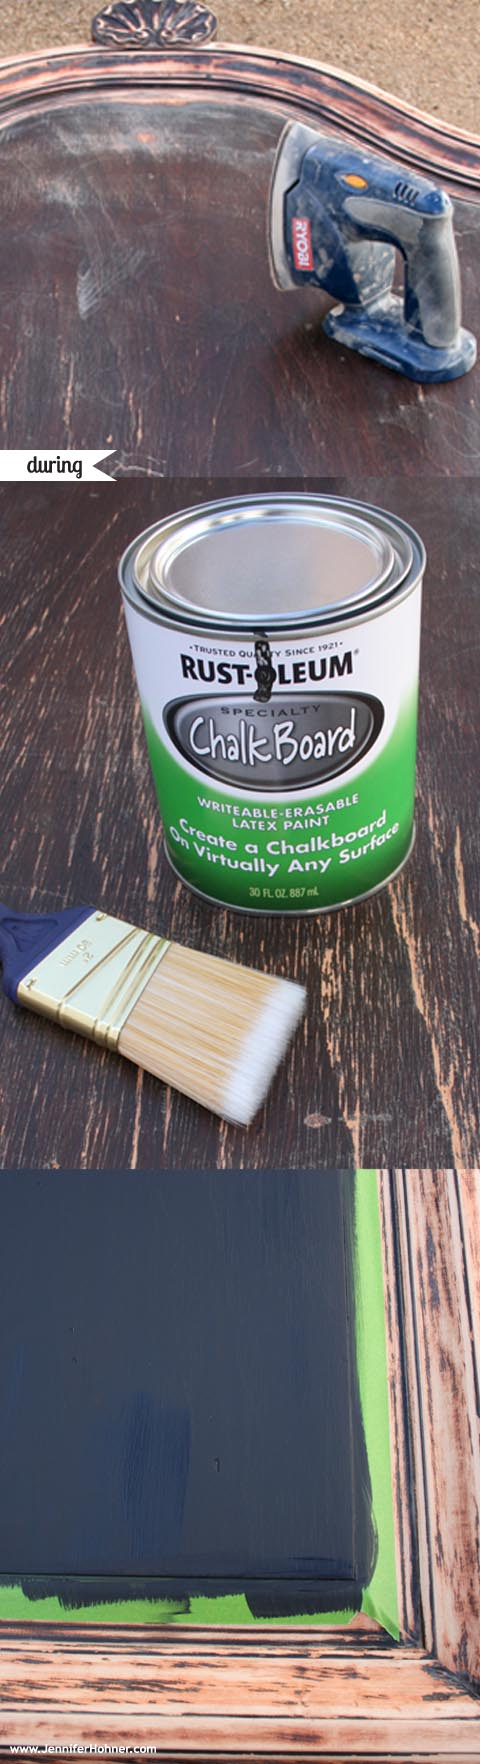 DIY_Chalkboard_during